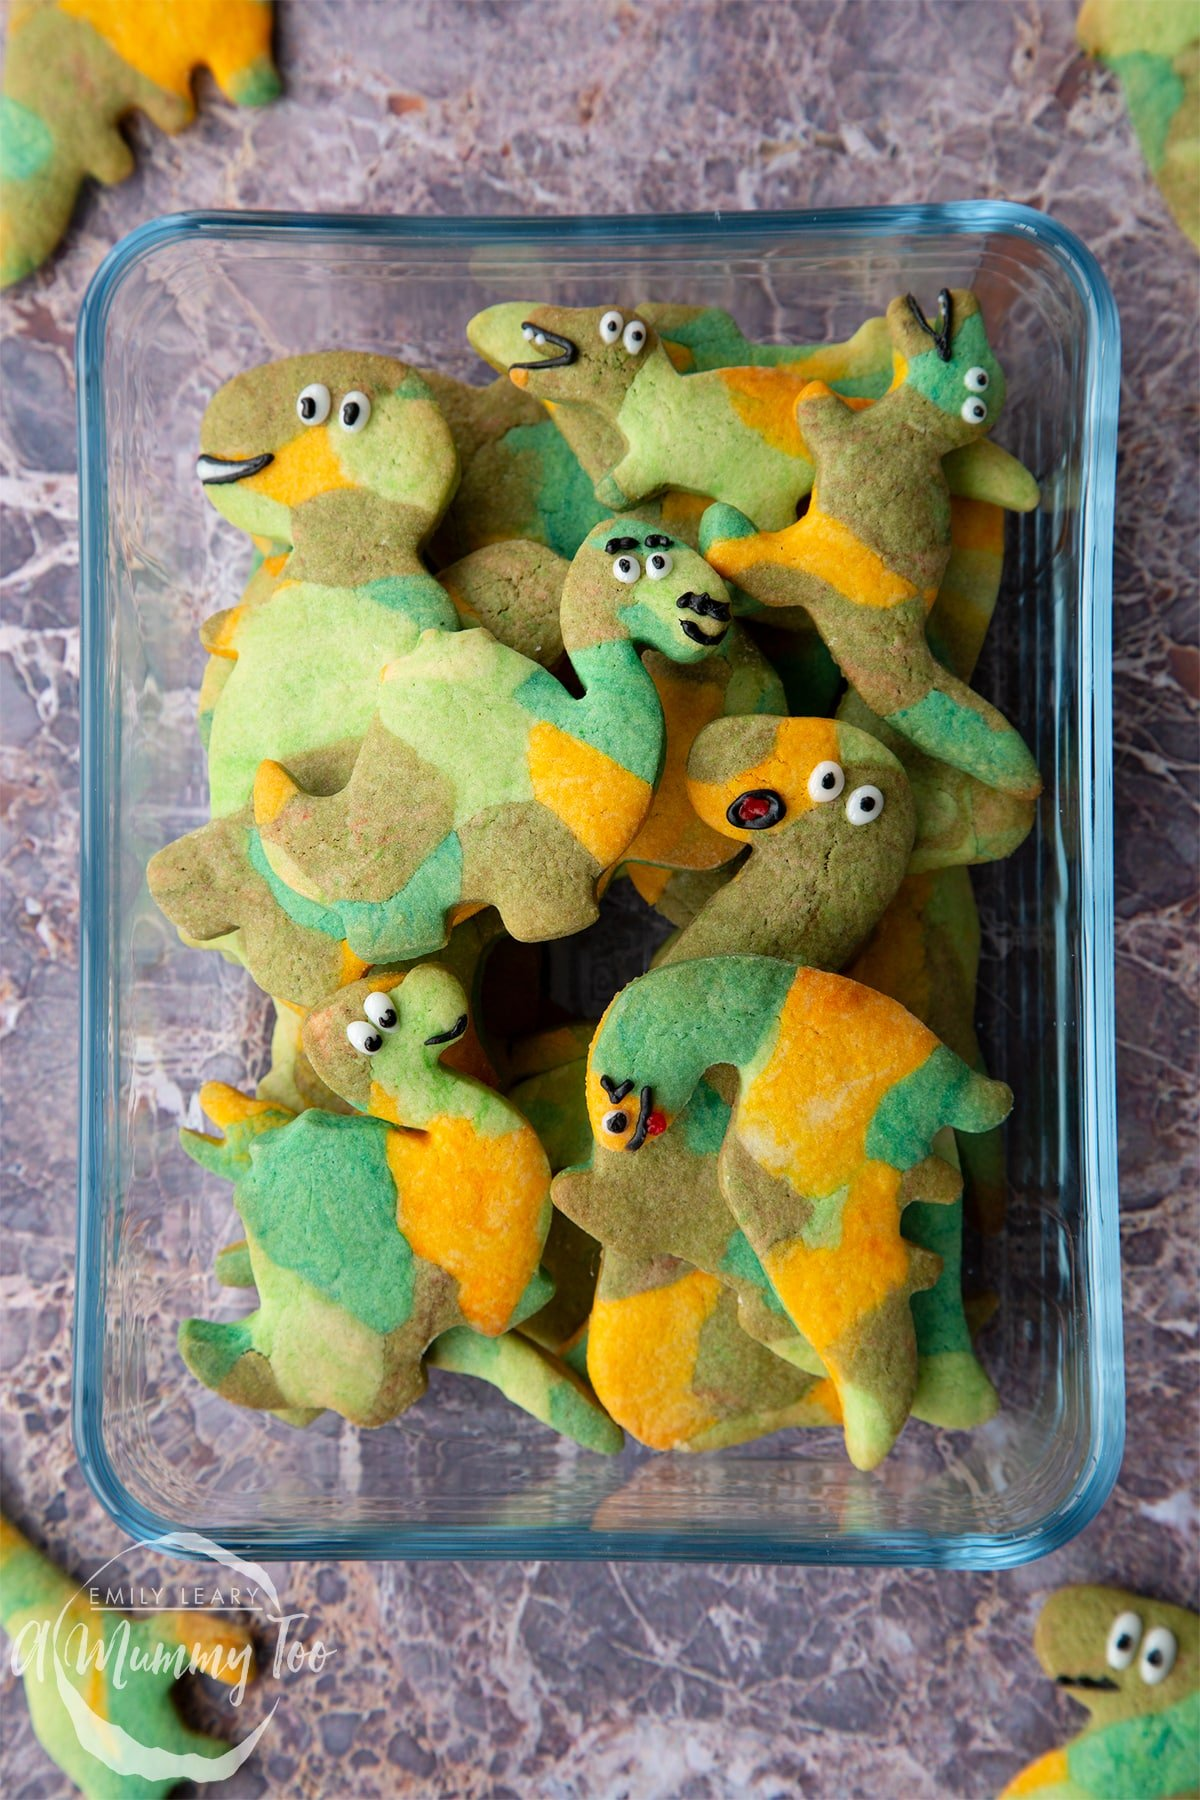 Overhead shot of dinosaur cookies stacked in a clear glass casserole dish with A Mummy Too logo in the corner